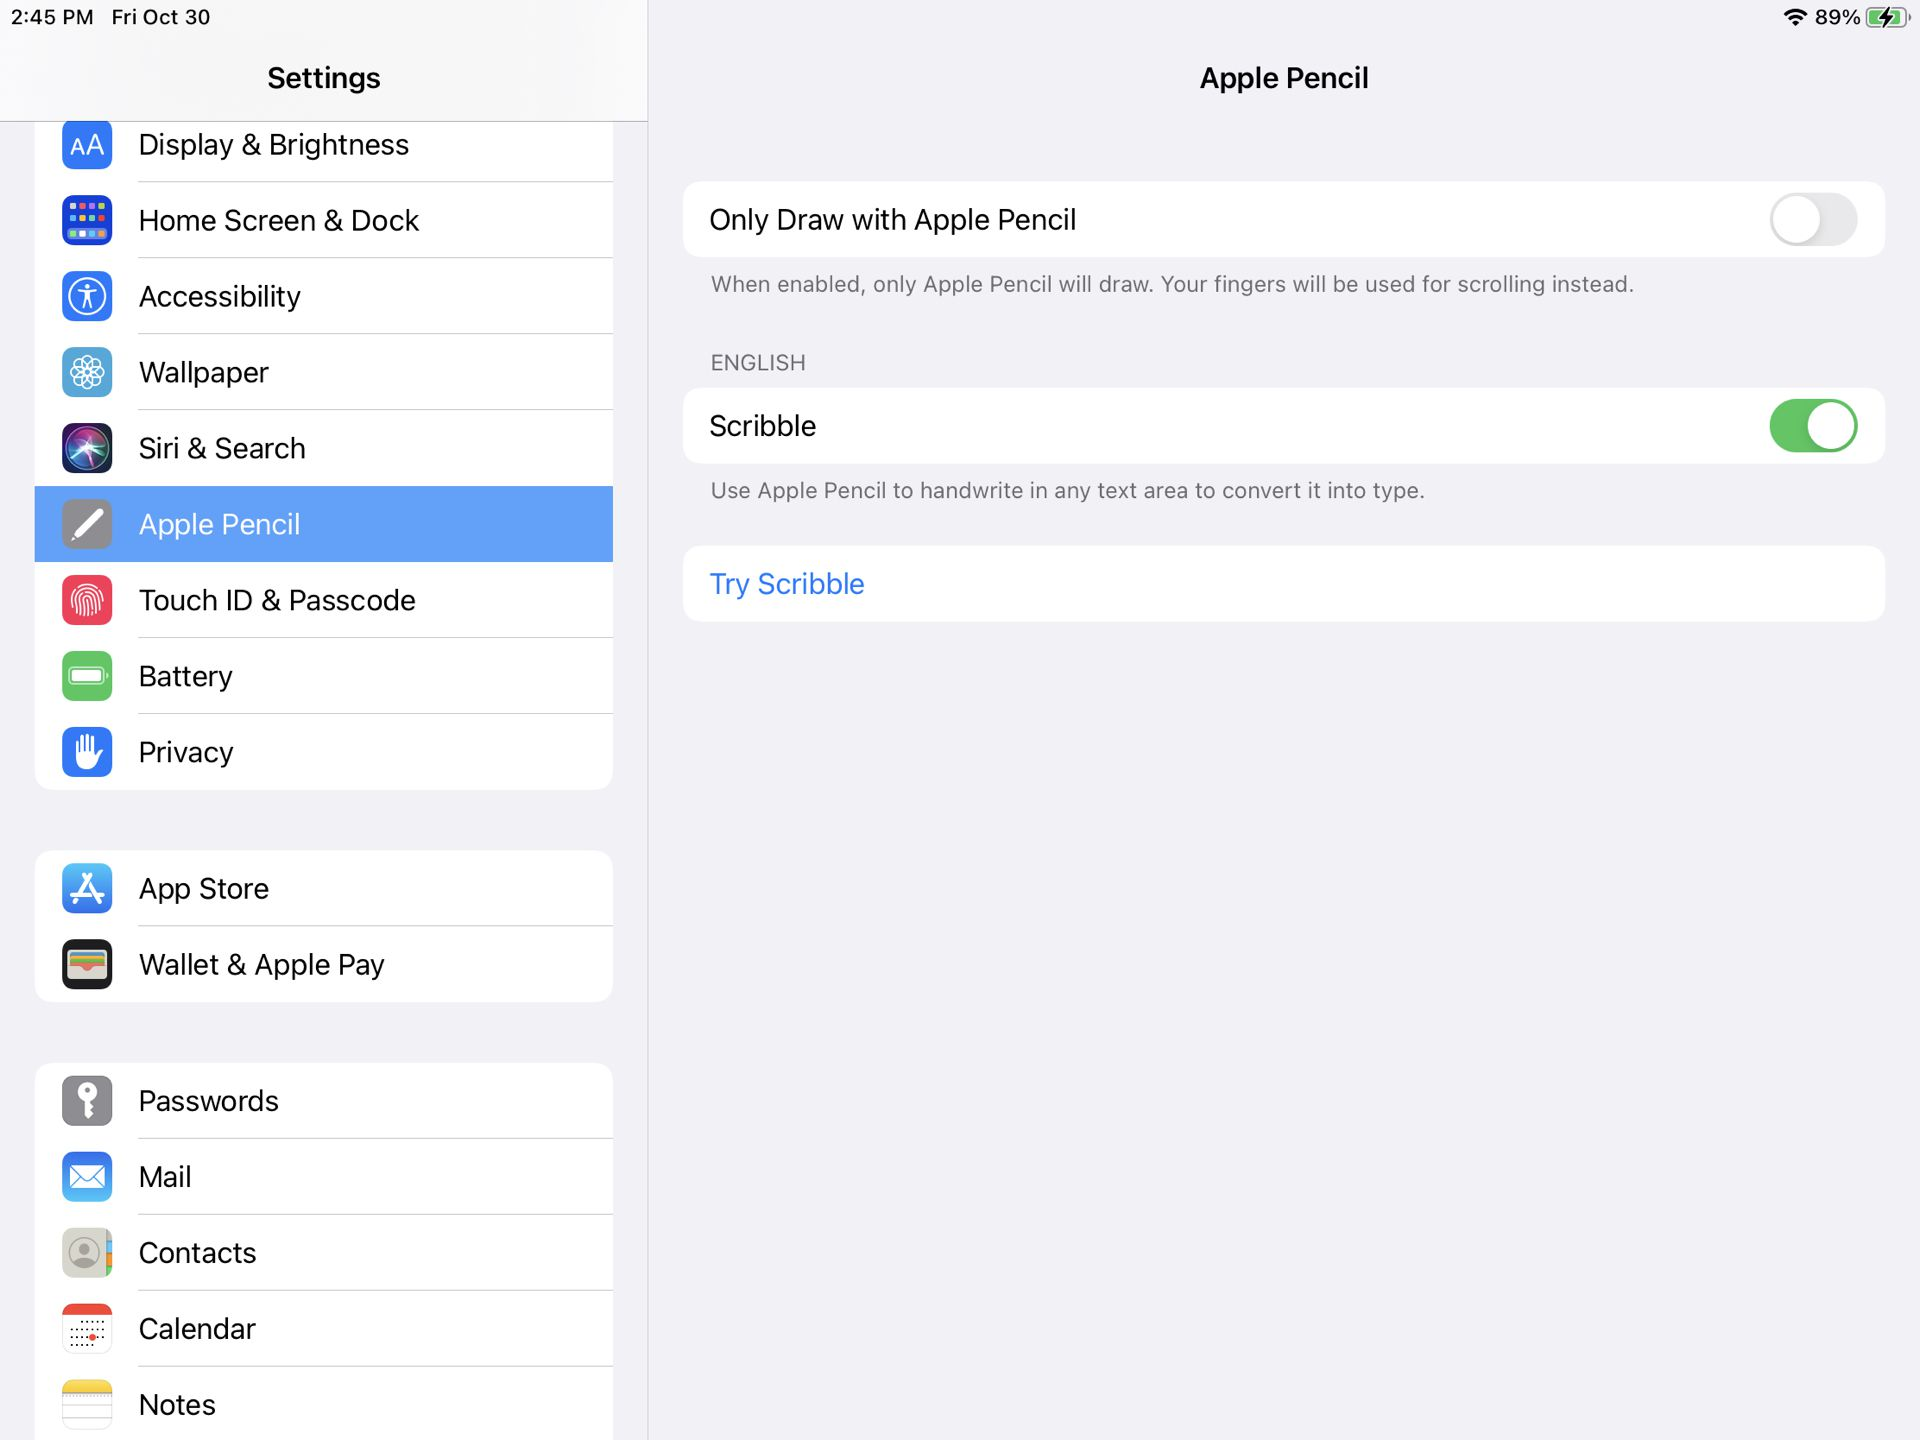 iPad Settings for Apple Pencil Scribble enabled